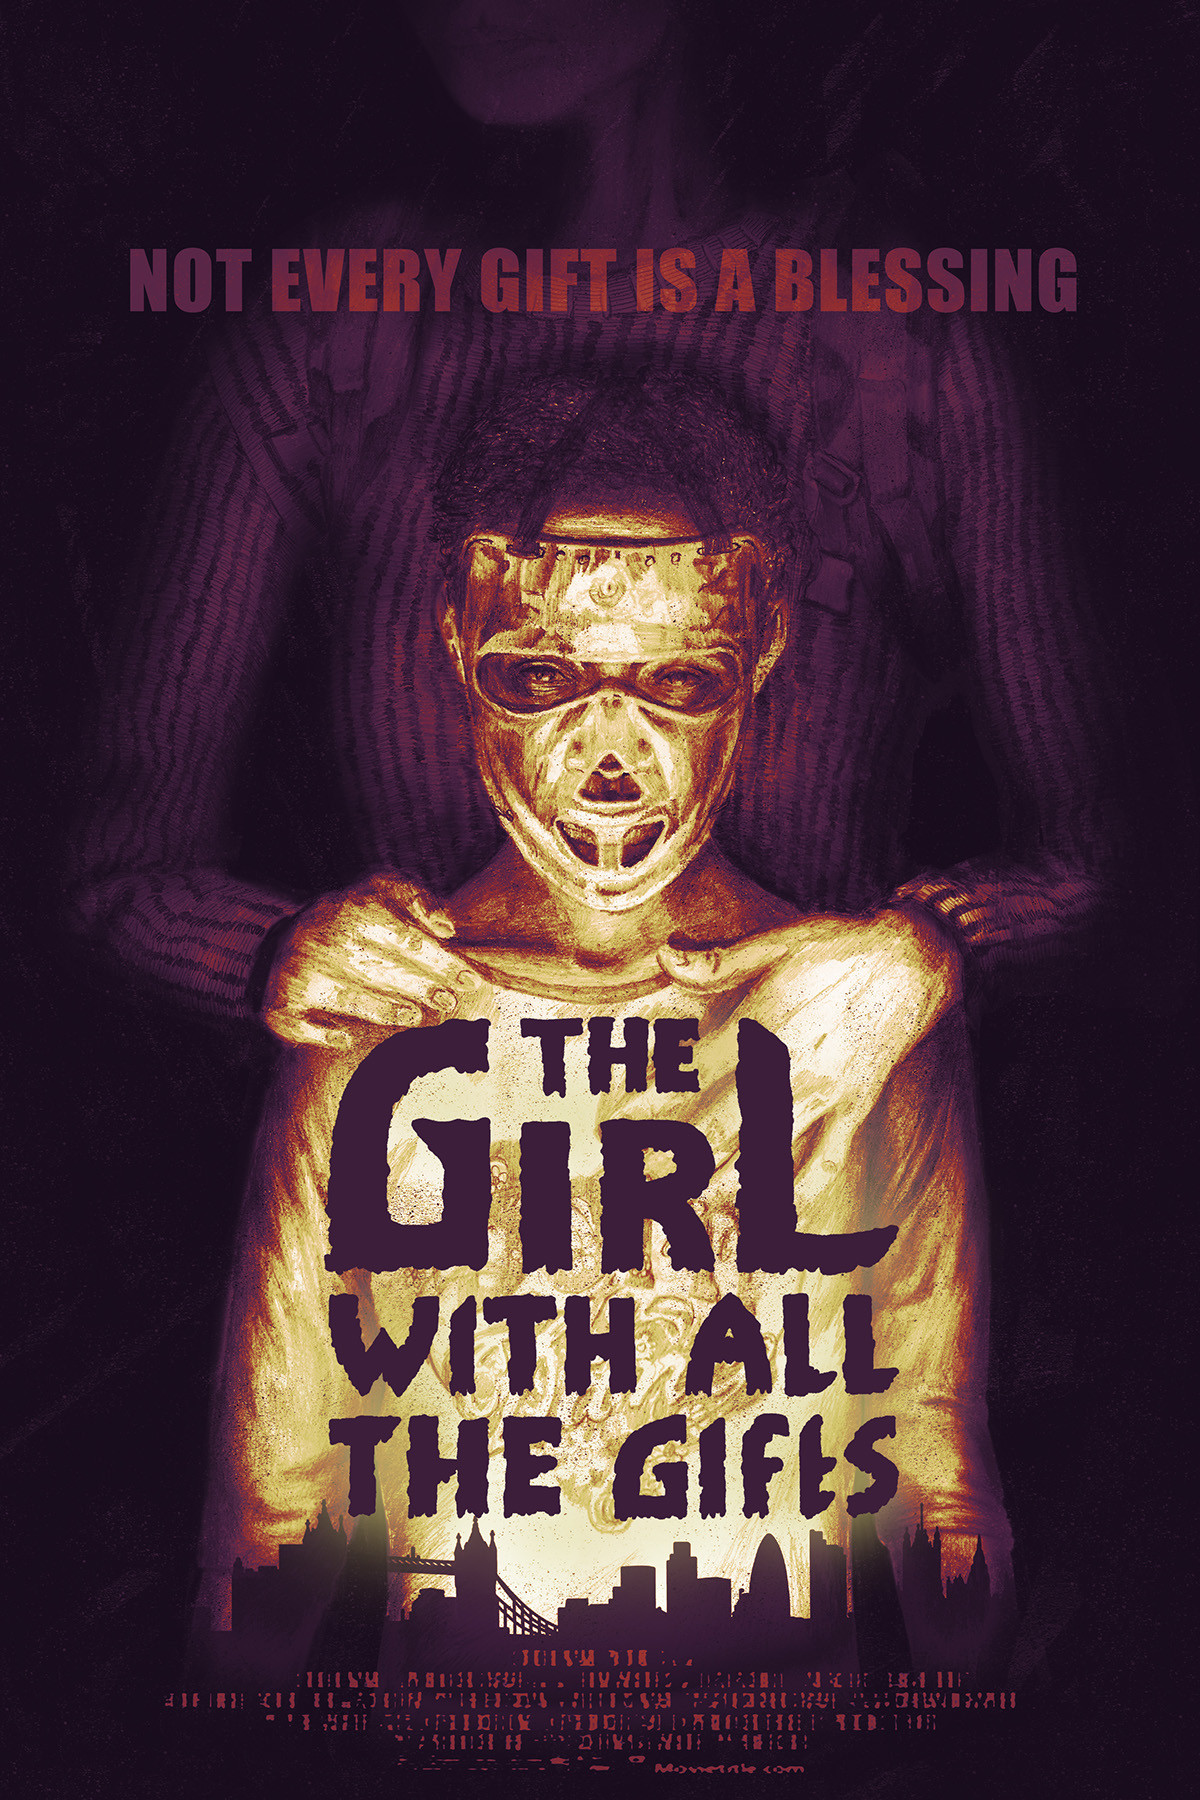 ArtStation - The Girl With All The Gifts Poster, Will Pitney